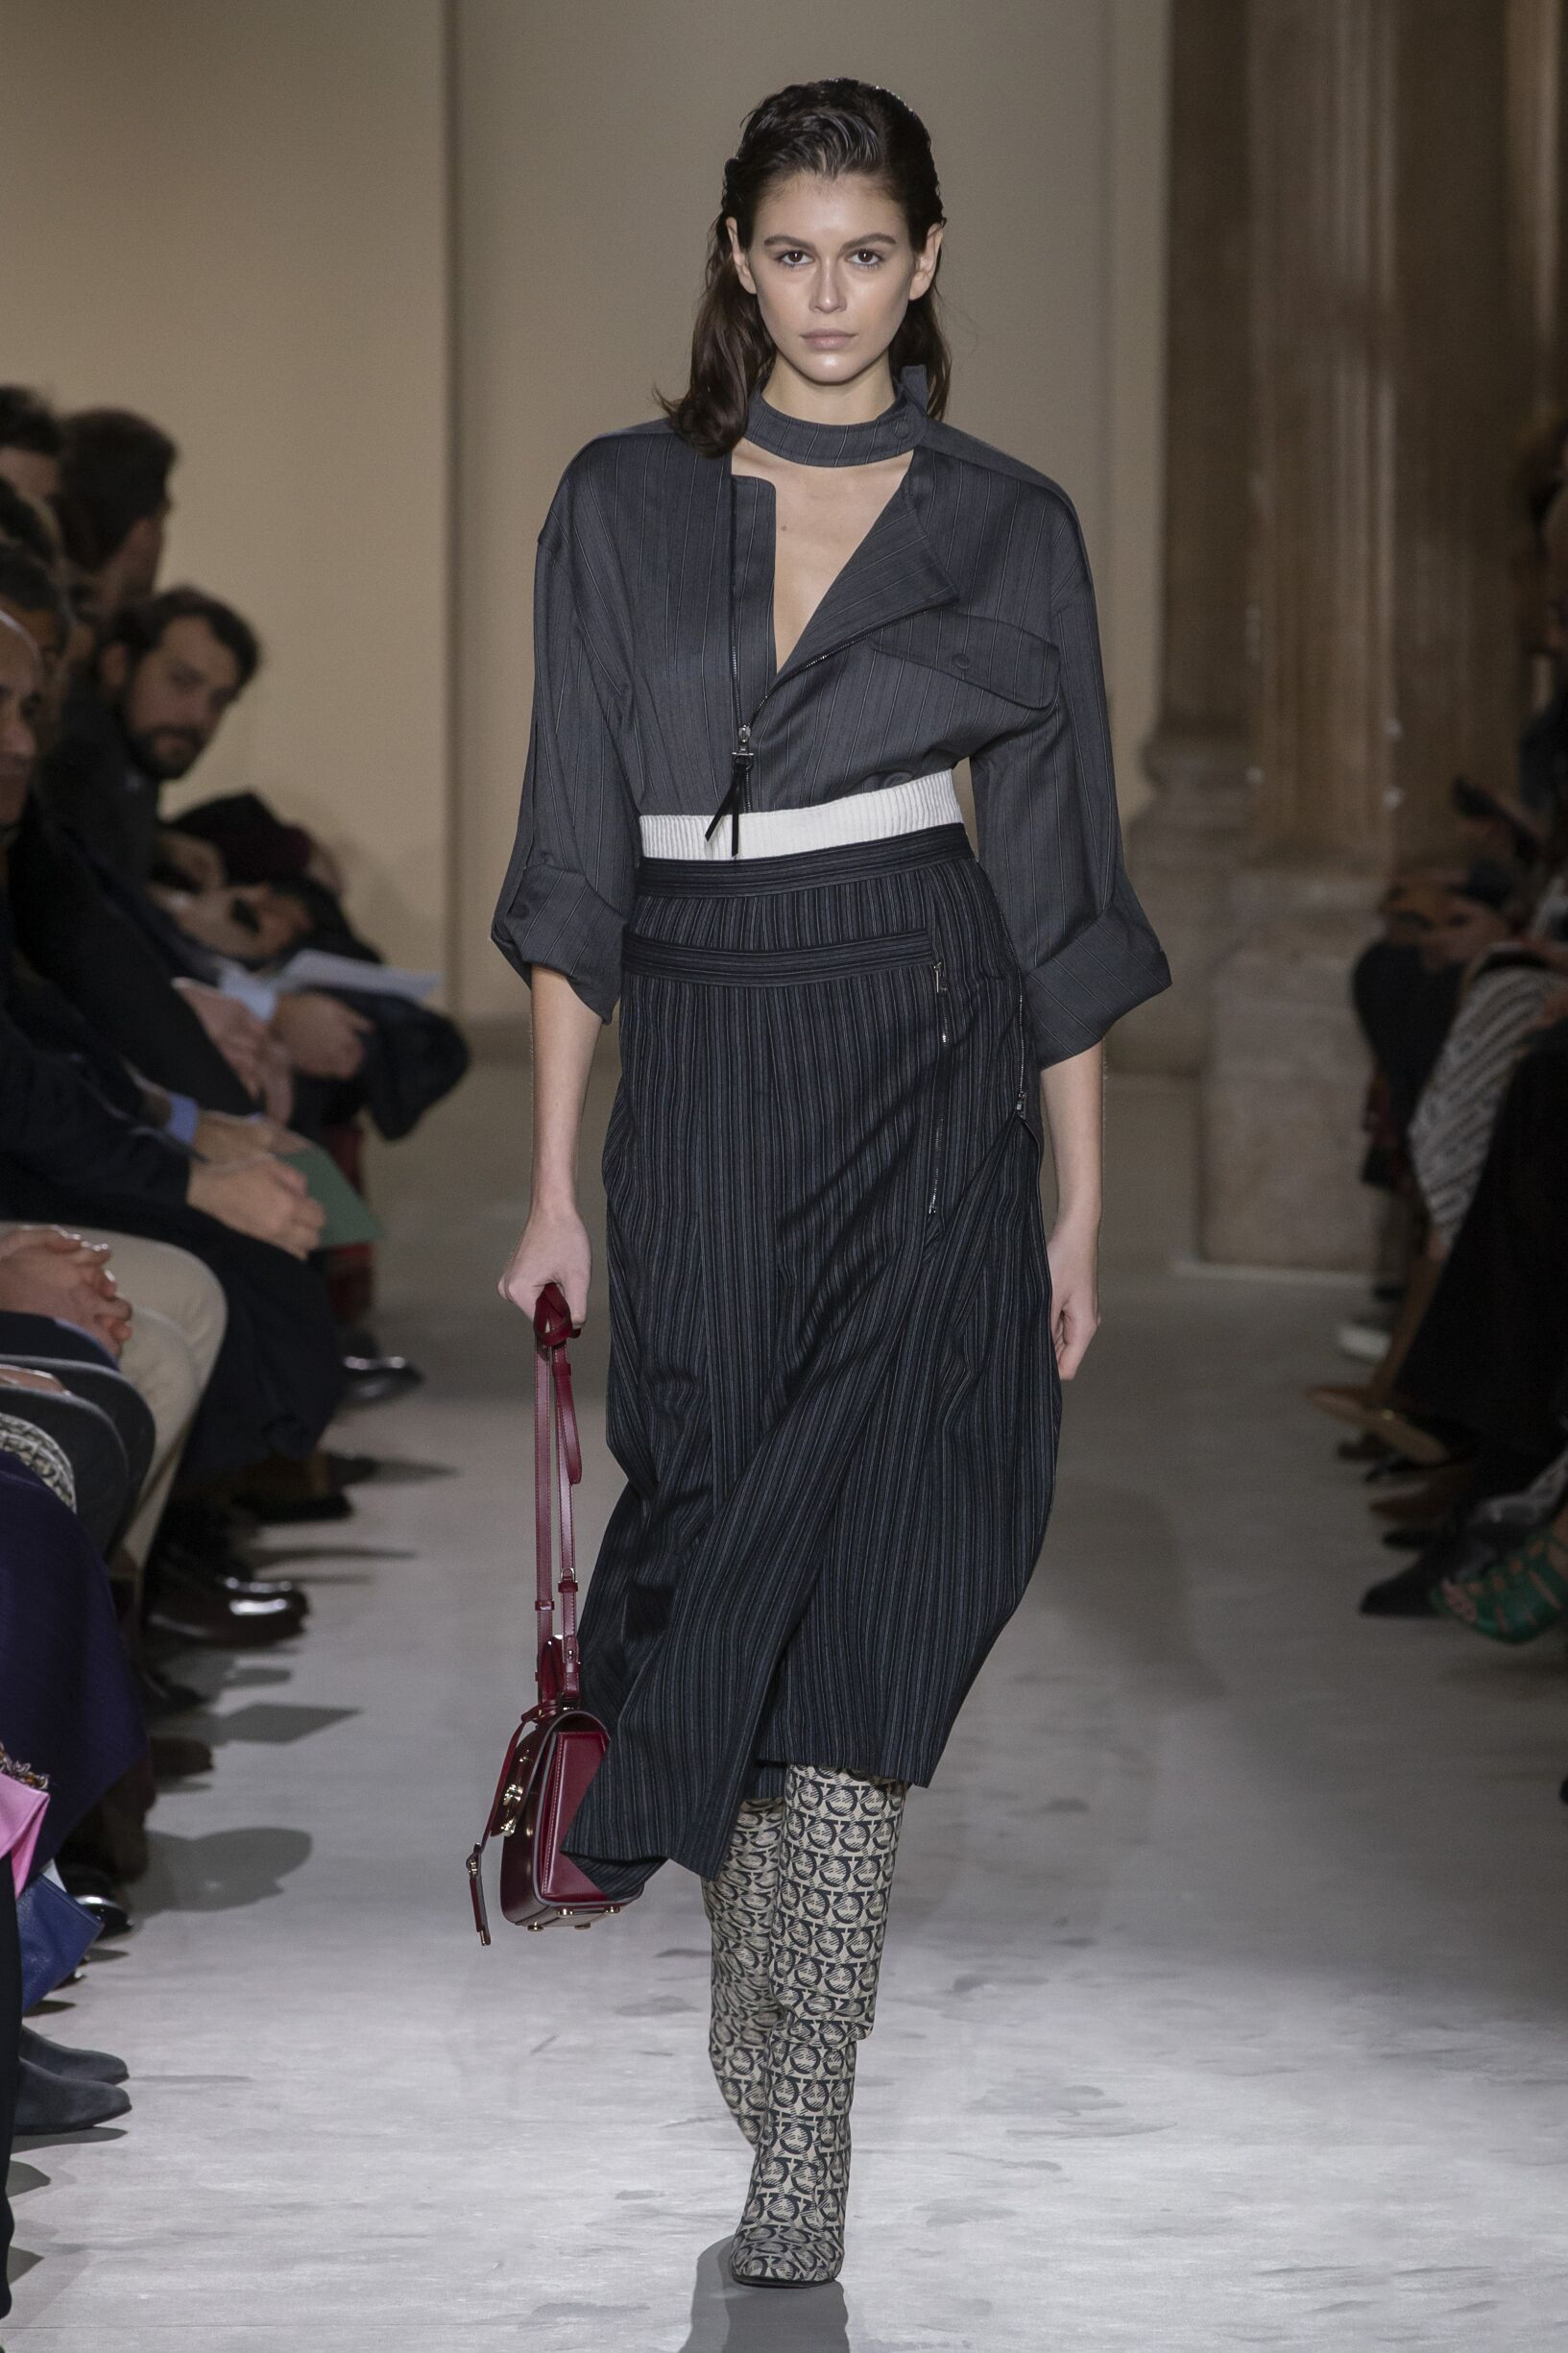 FW 2019-20 Fashion Show Salvatore Ferragamo